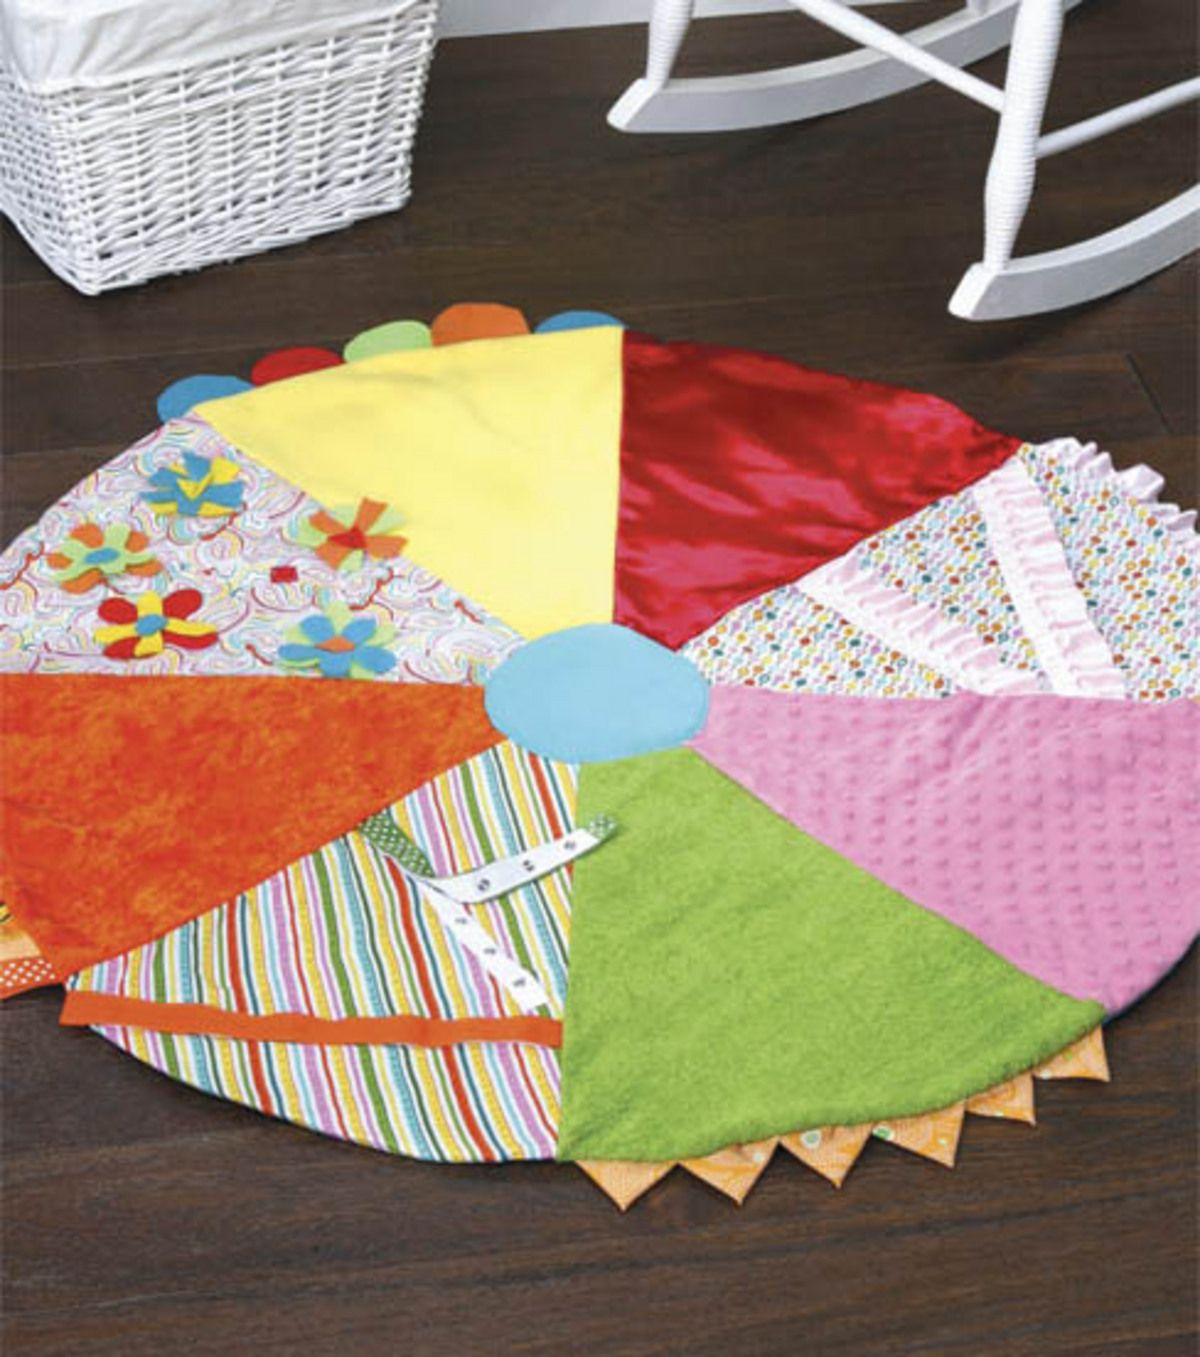 How To Make A Textured Play Mat For Baby Baby Activity Mat Baby Activity Mat Baby Playmat Quilt Baby Quilts